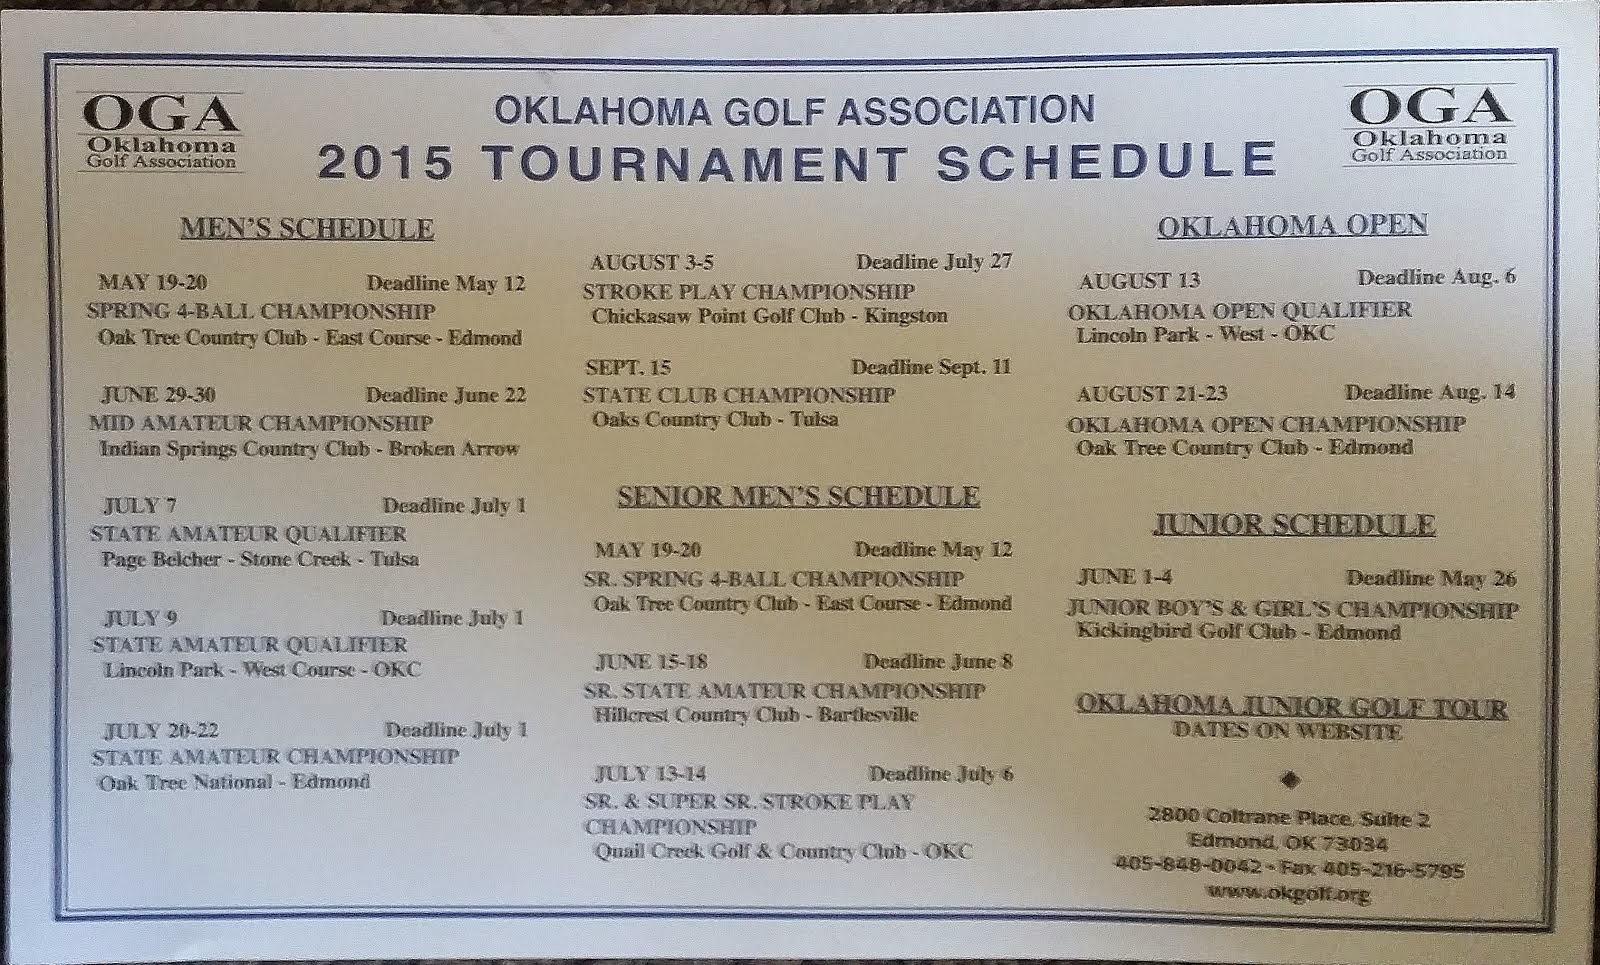 OGA AMATEUR SCHEDULE 2015